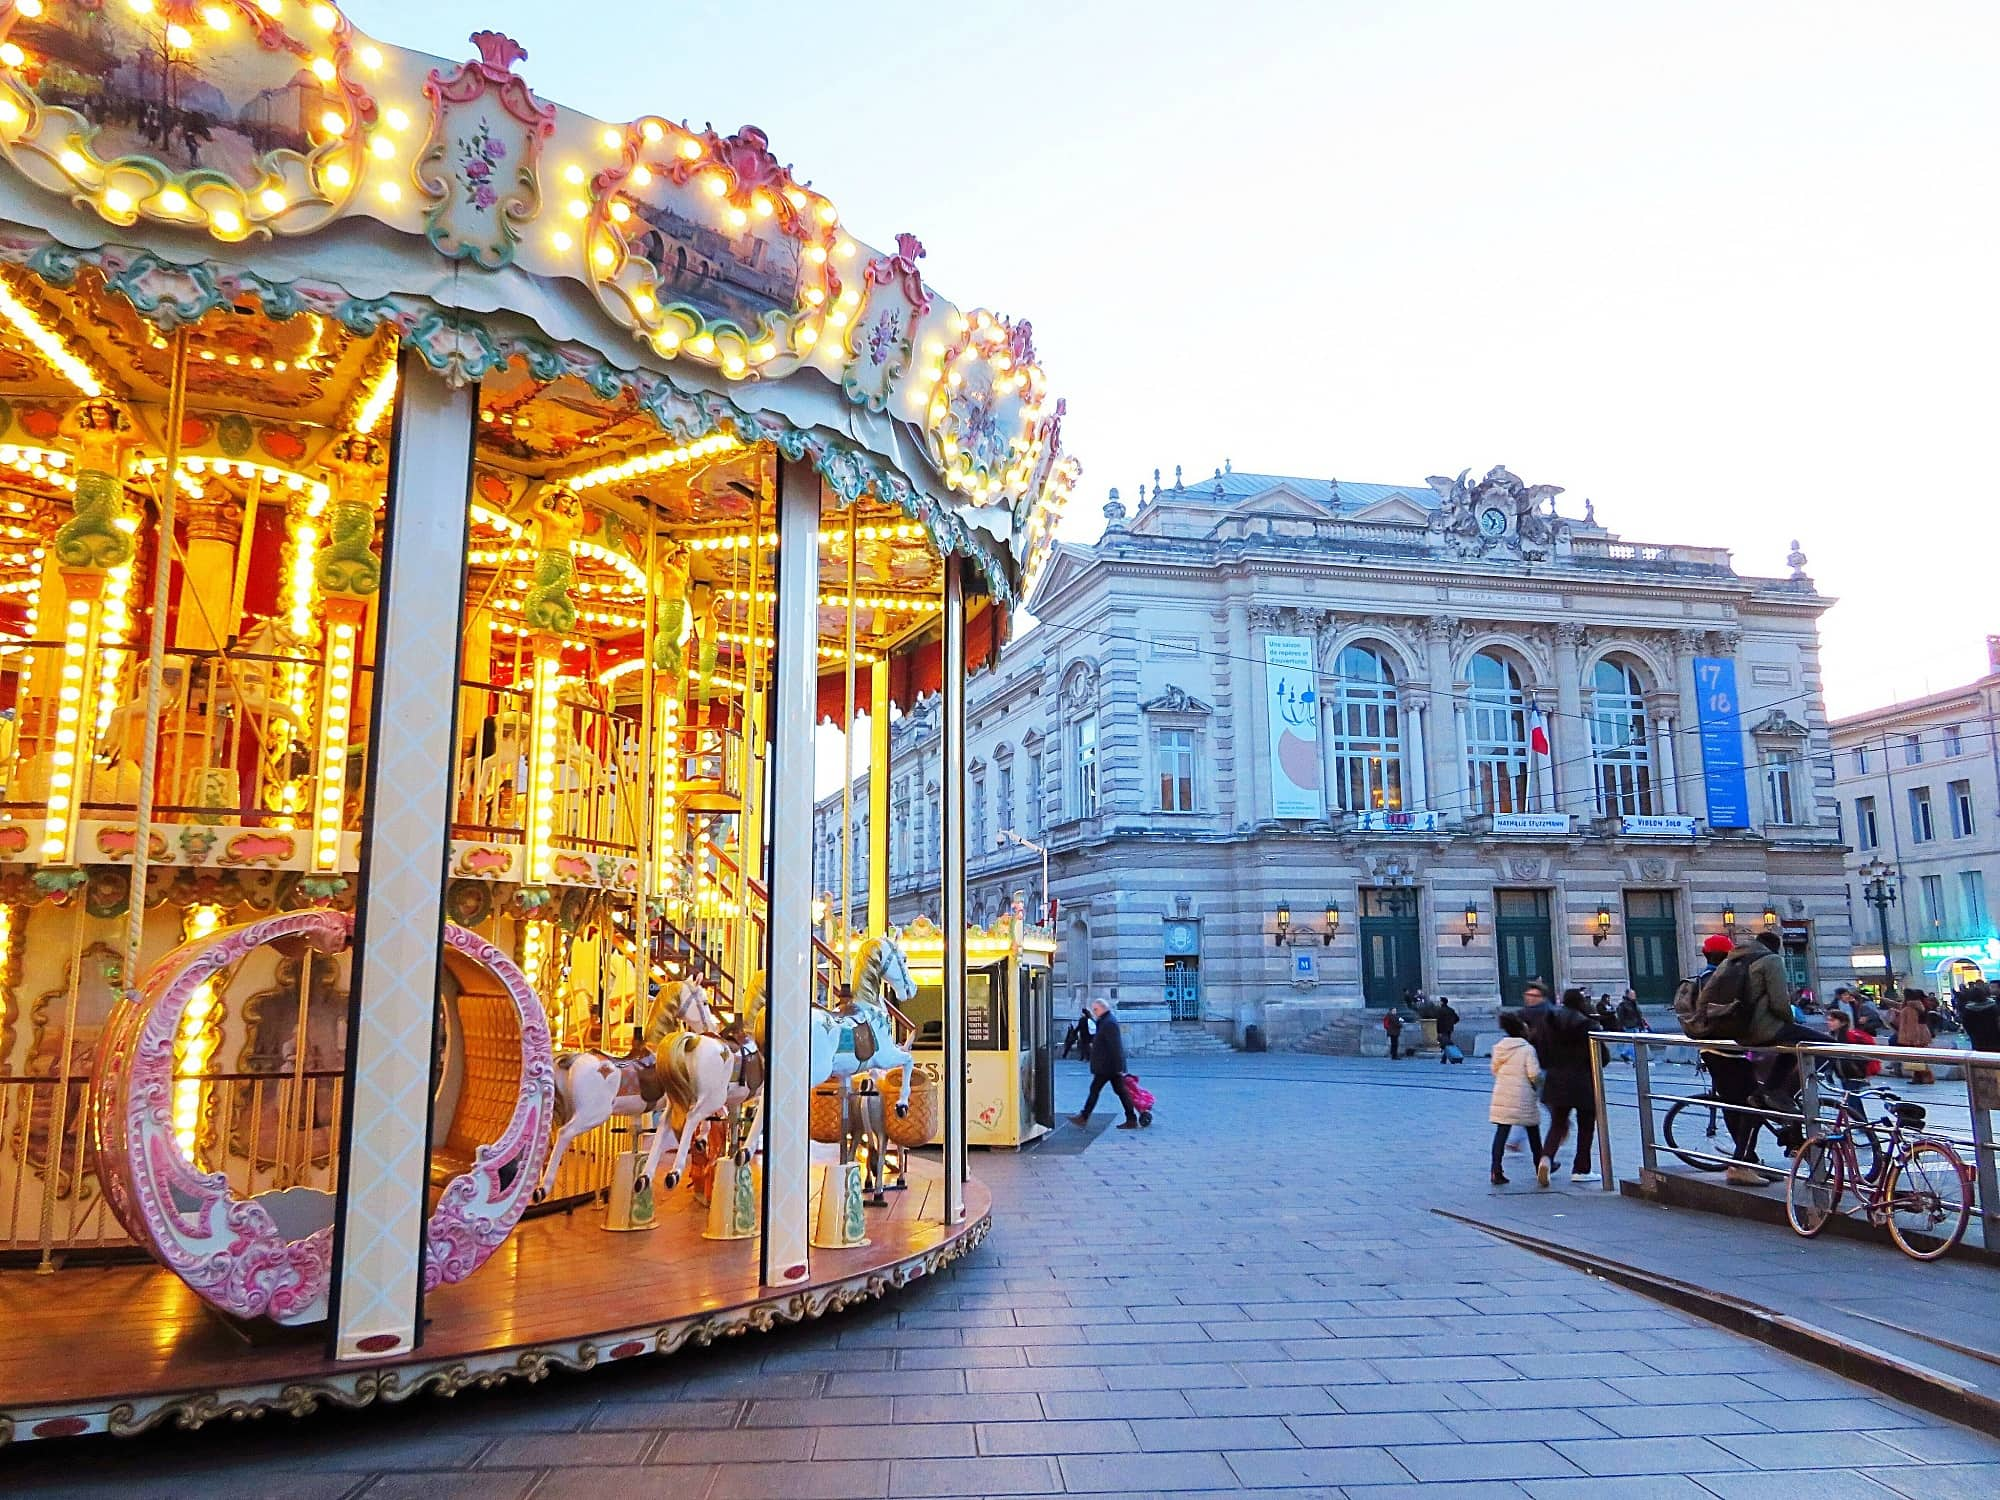 Parking Odysseum Montpellier 12 Things To Do In Montpellier With Kids France S Most Youthful City